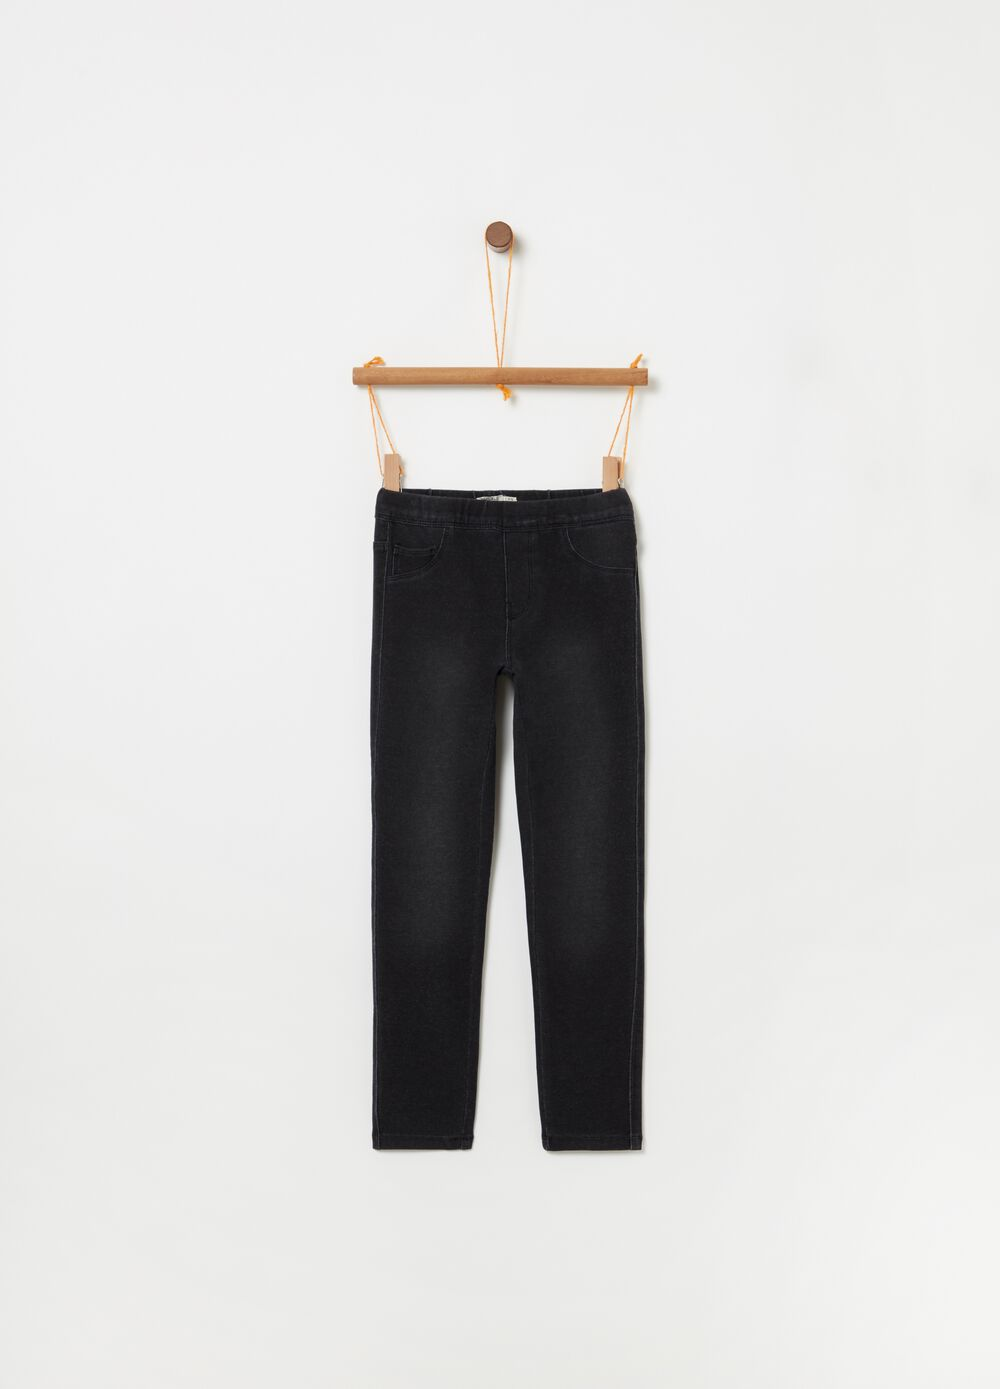 Jeggings with elasticated waist and five pockets.